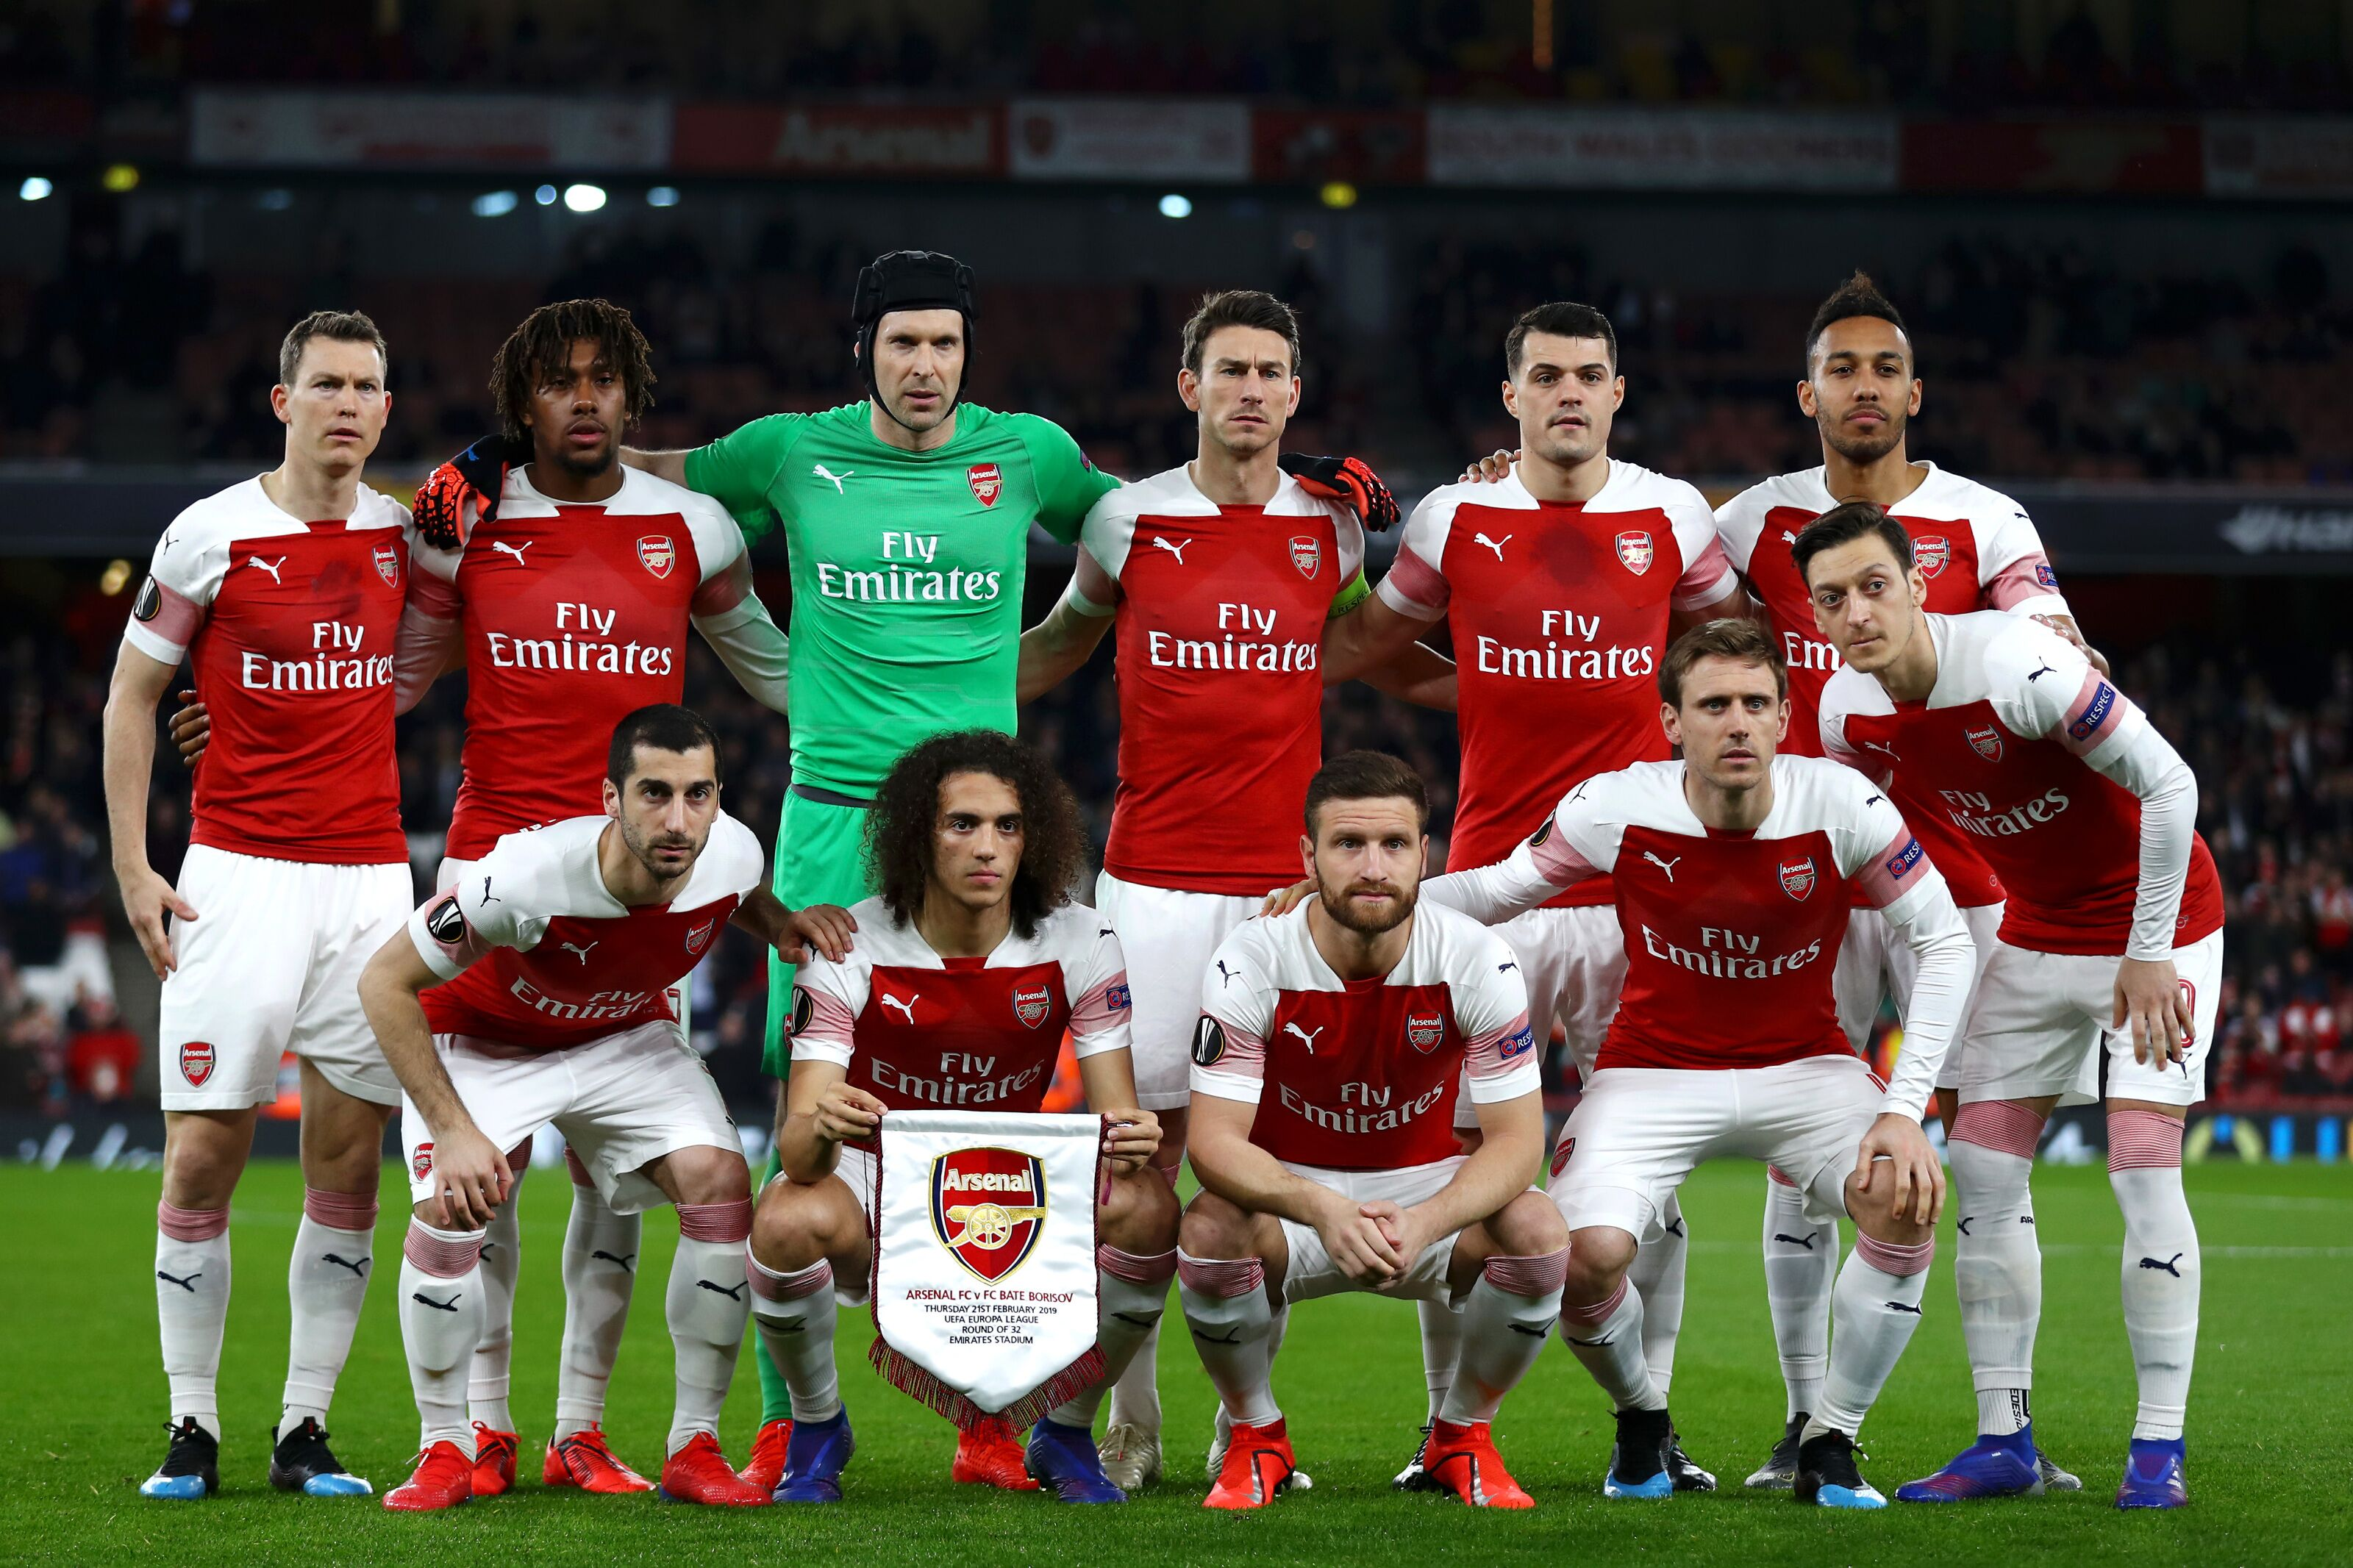 0a25da606 Arsenal Vs BATE Borisov  Player ratings - Job done